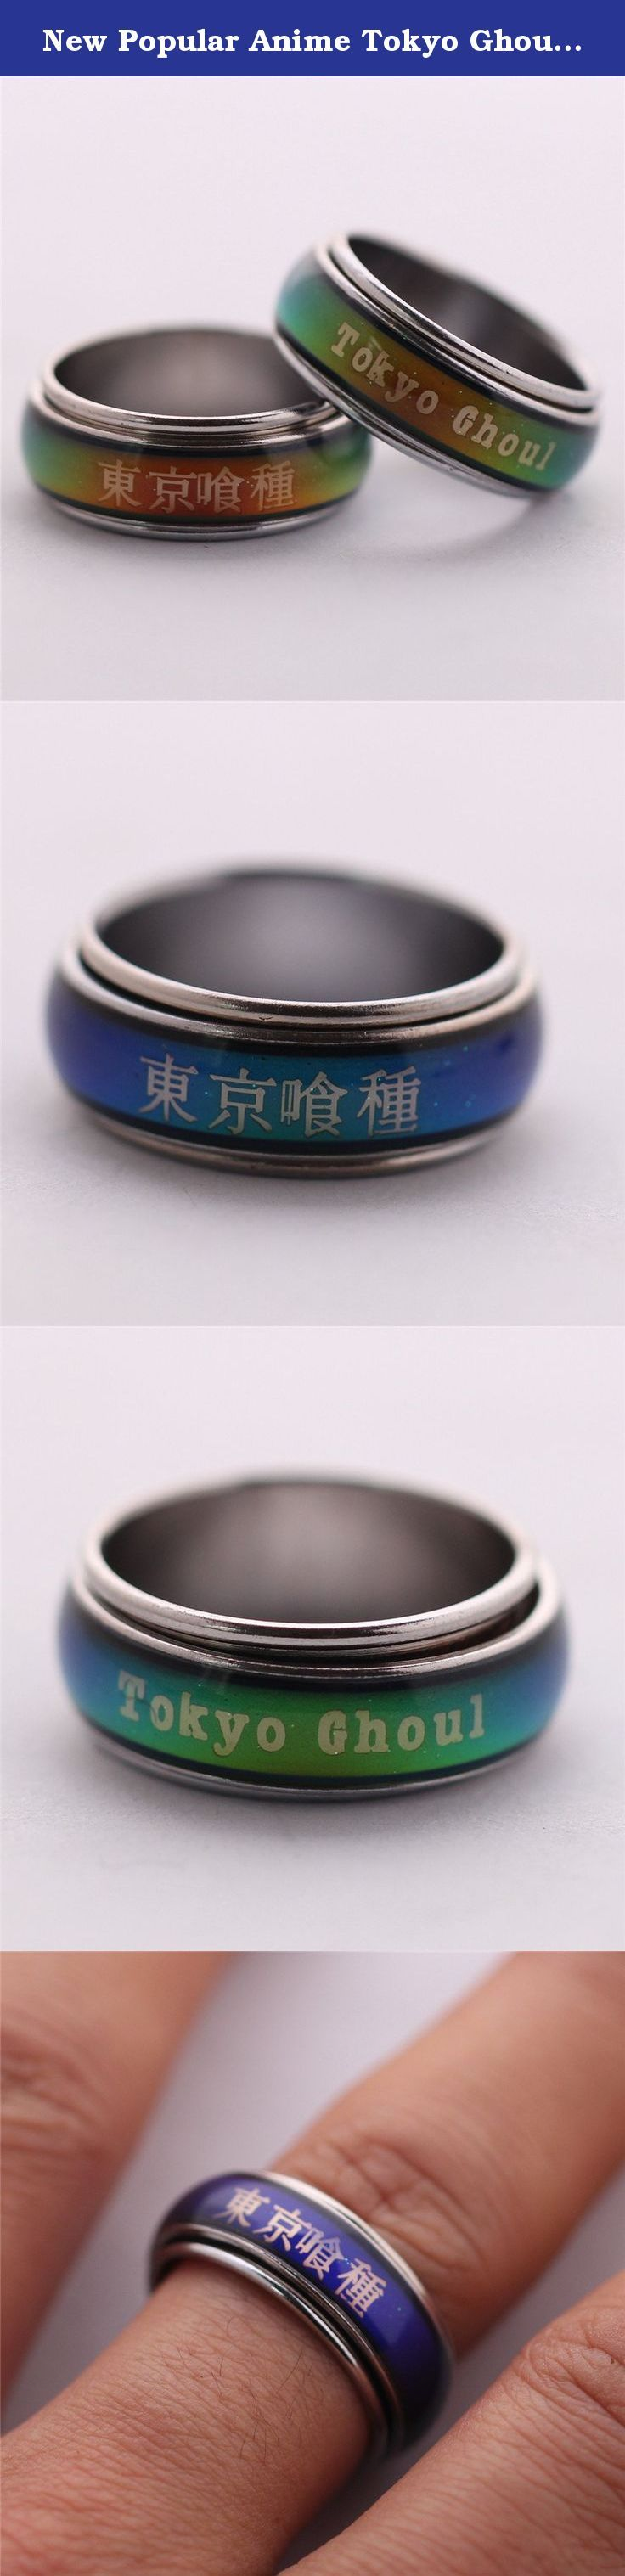 New Popular Anime Tokyo Ghoul Thermostat Discolored Ring Free Chain. Don't put it in water! You can get a free chain!.